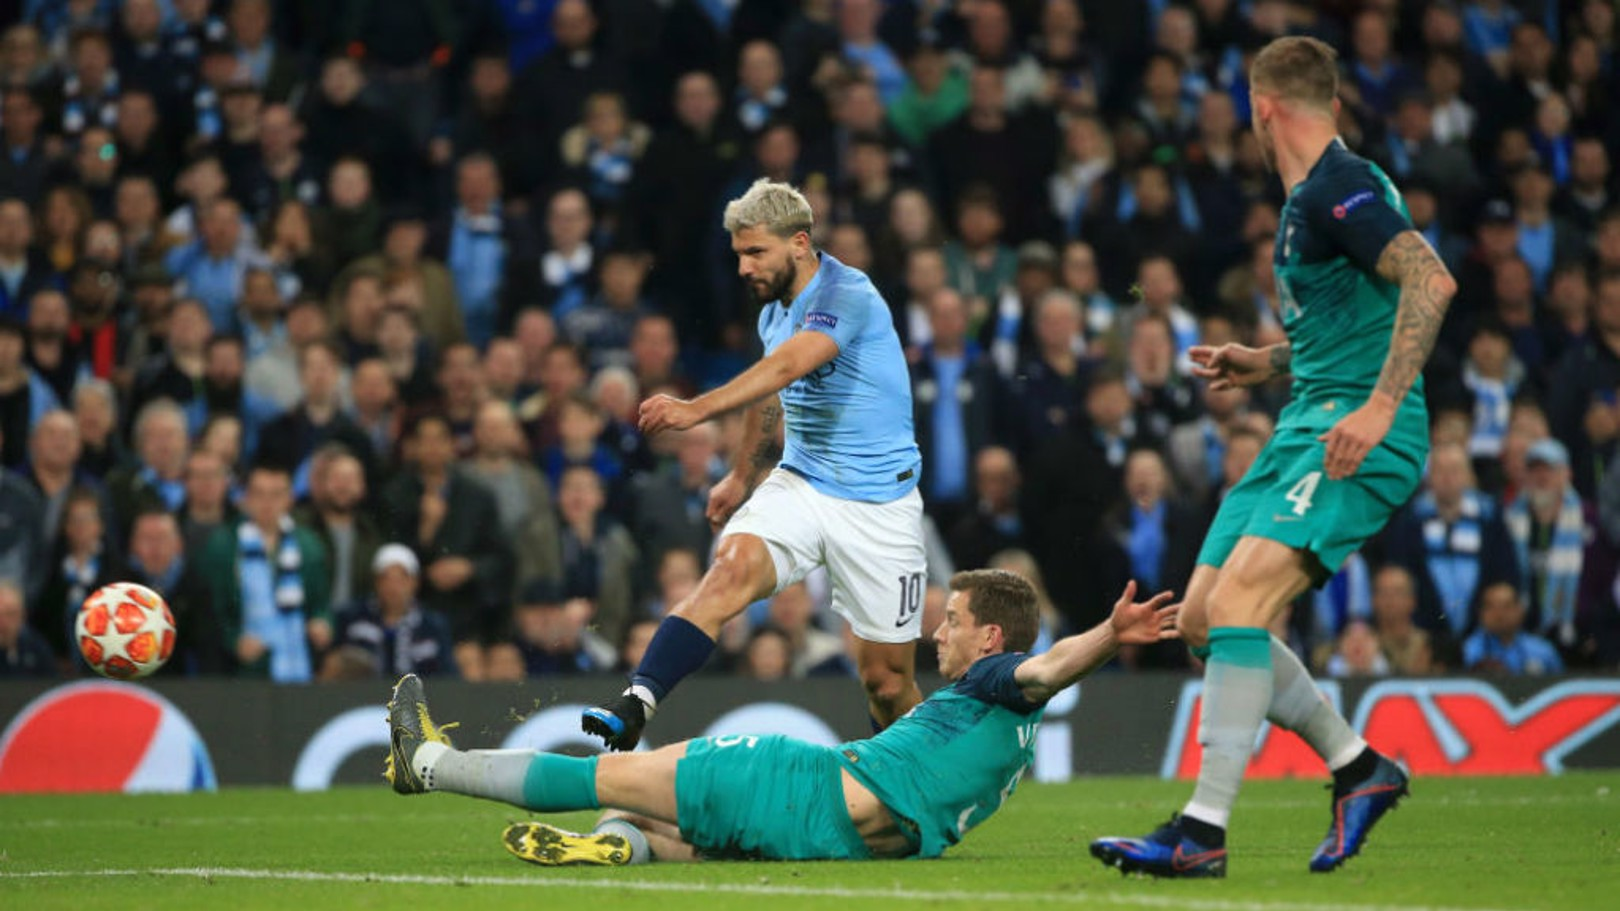 POWER SERGE: Kun lashes home City's fourth goal from close-range to put us ahead in the tie for the first time